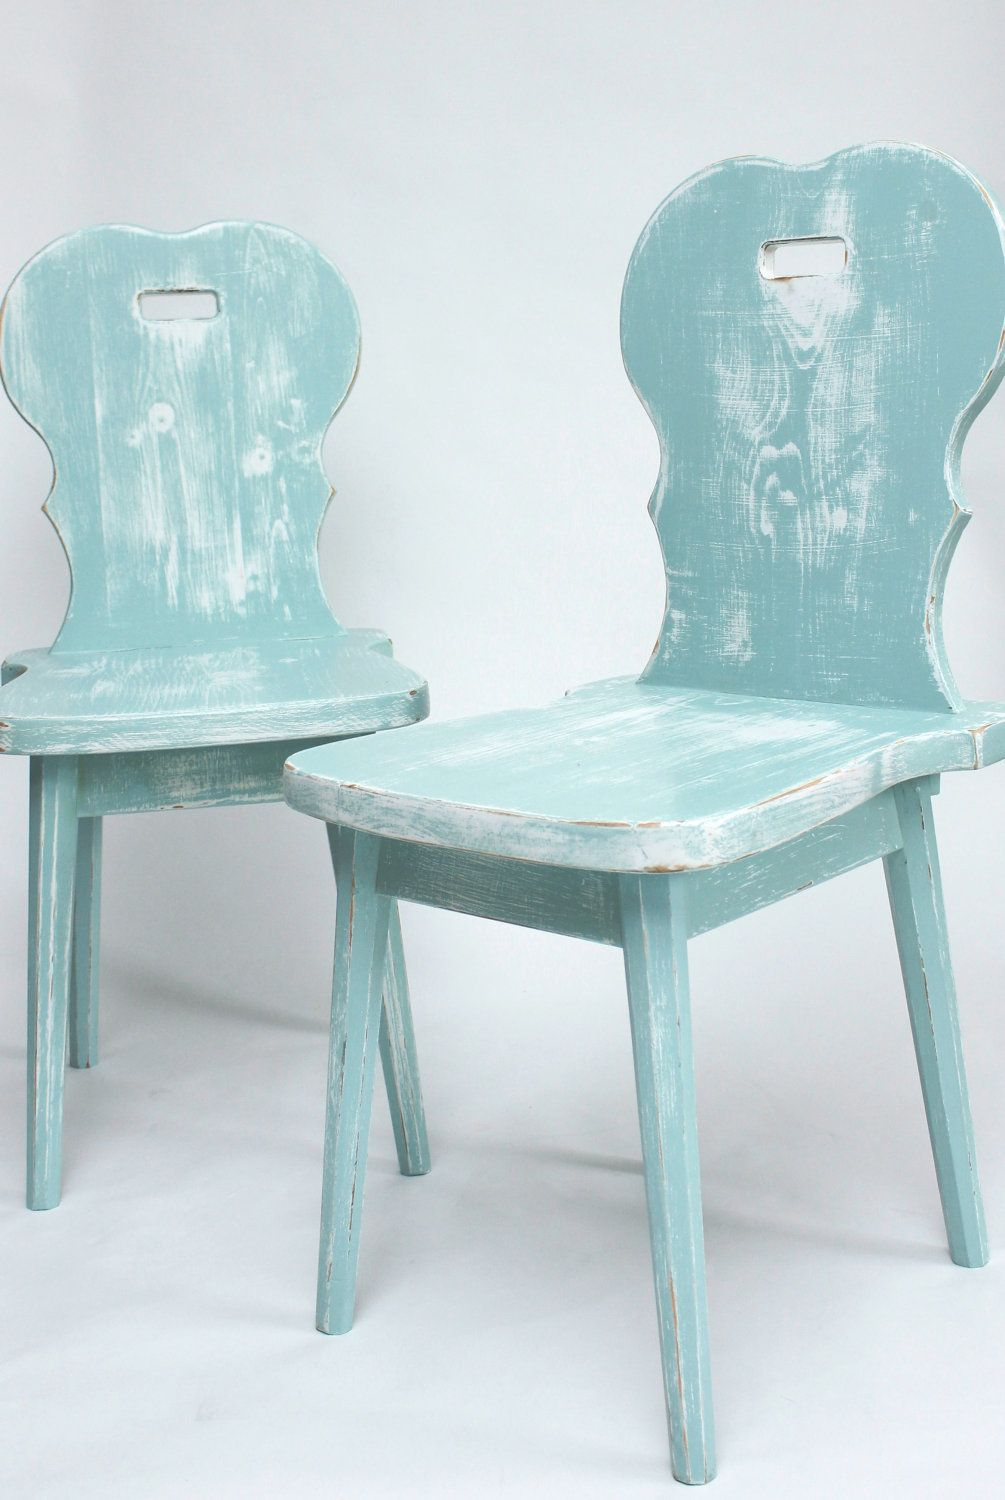 Distressed Cottage Style Wooden Chairs Seafoam by